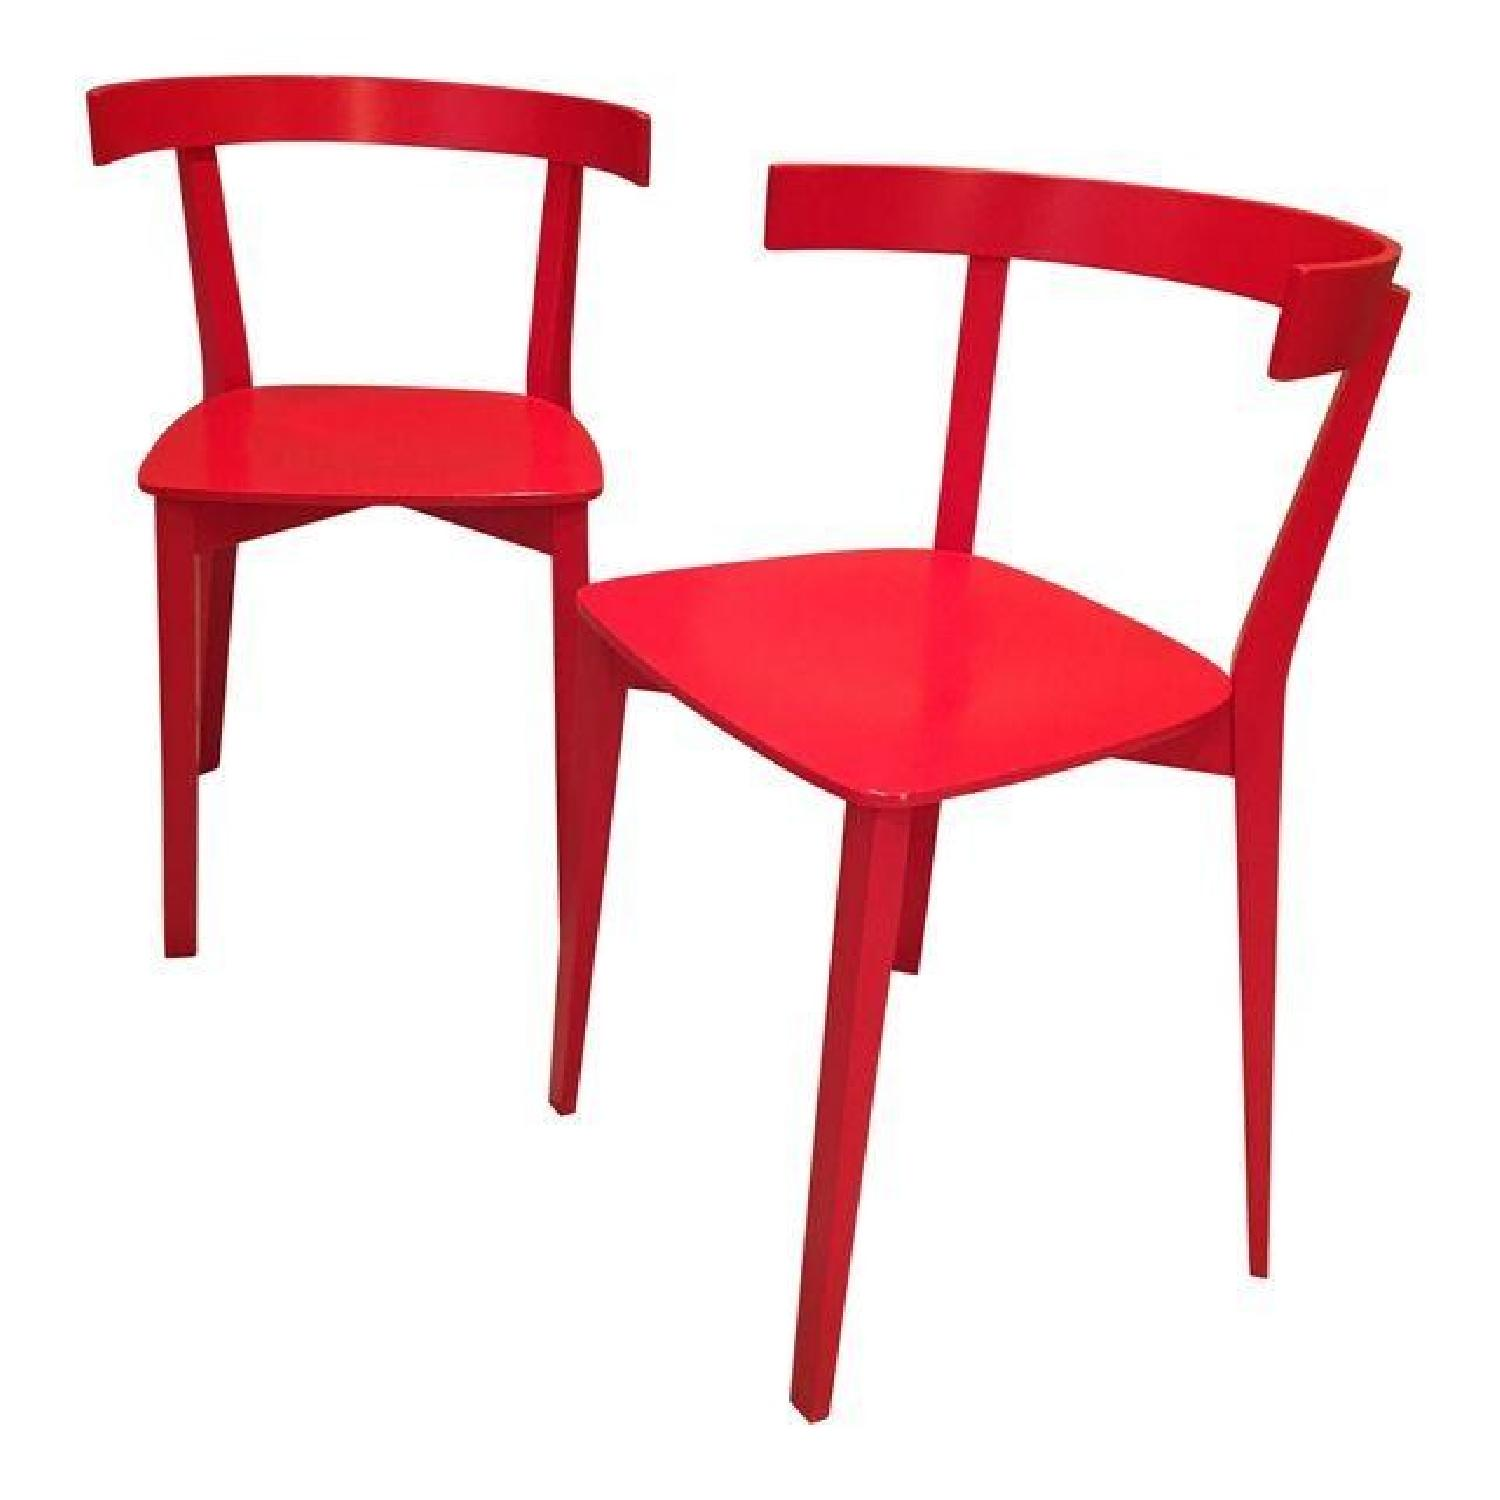 High Gloss Red Lacquer Chairs - image-0